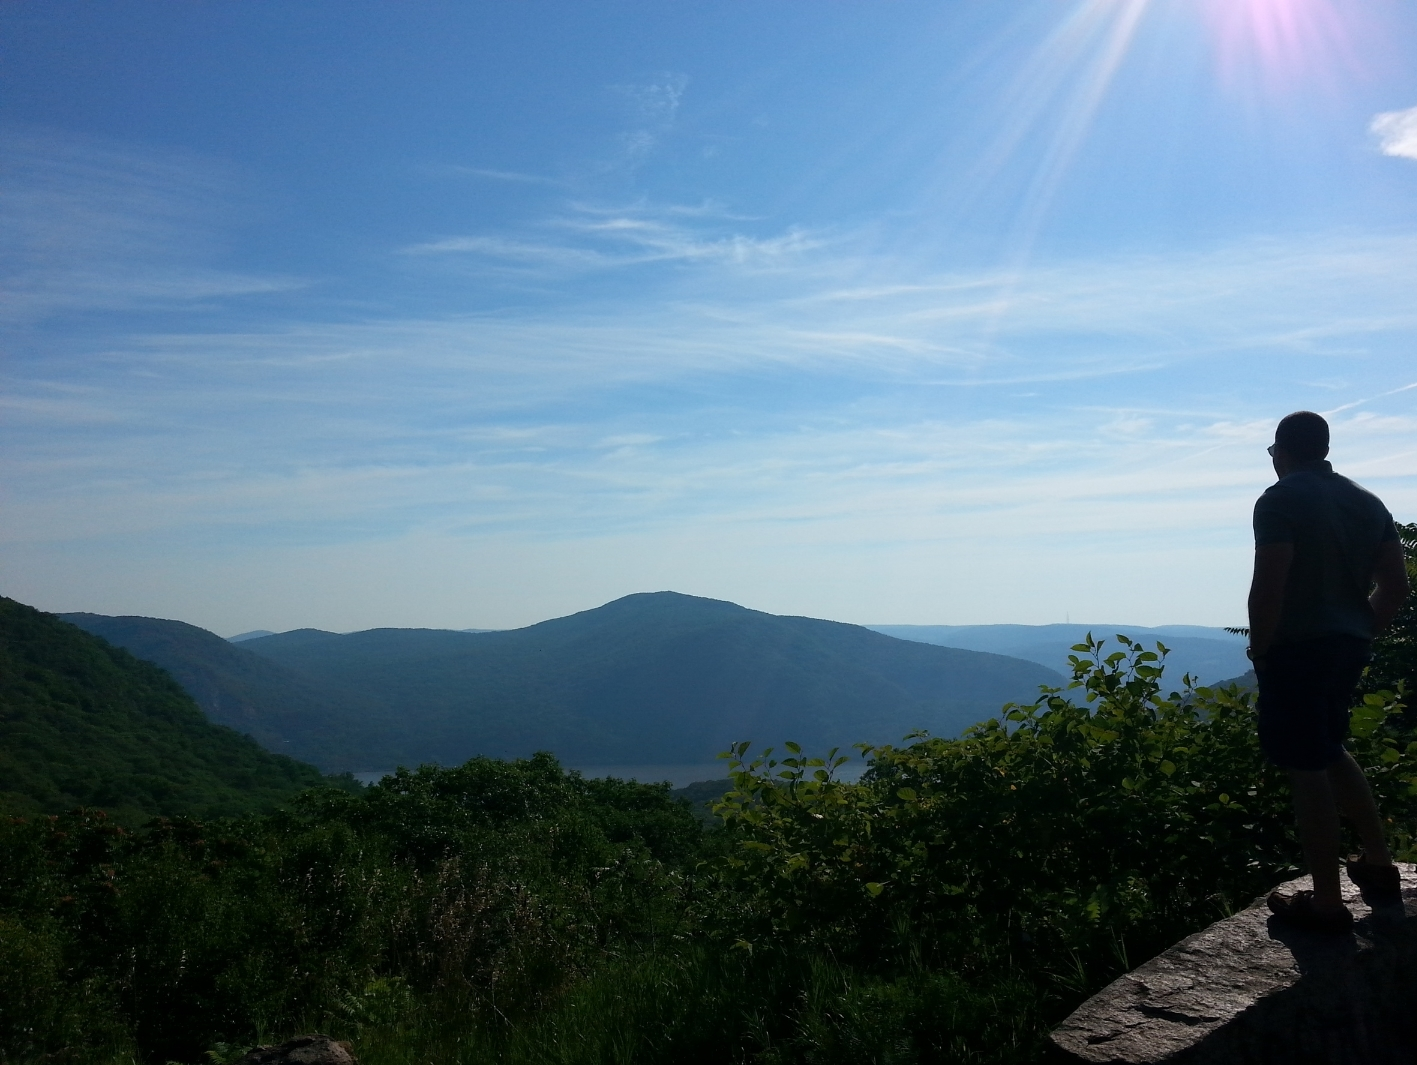 Views of the Hudson Valley from the drive up to Newburgh.